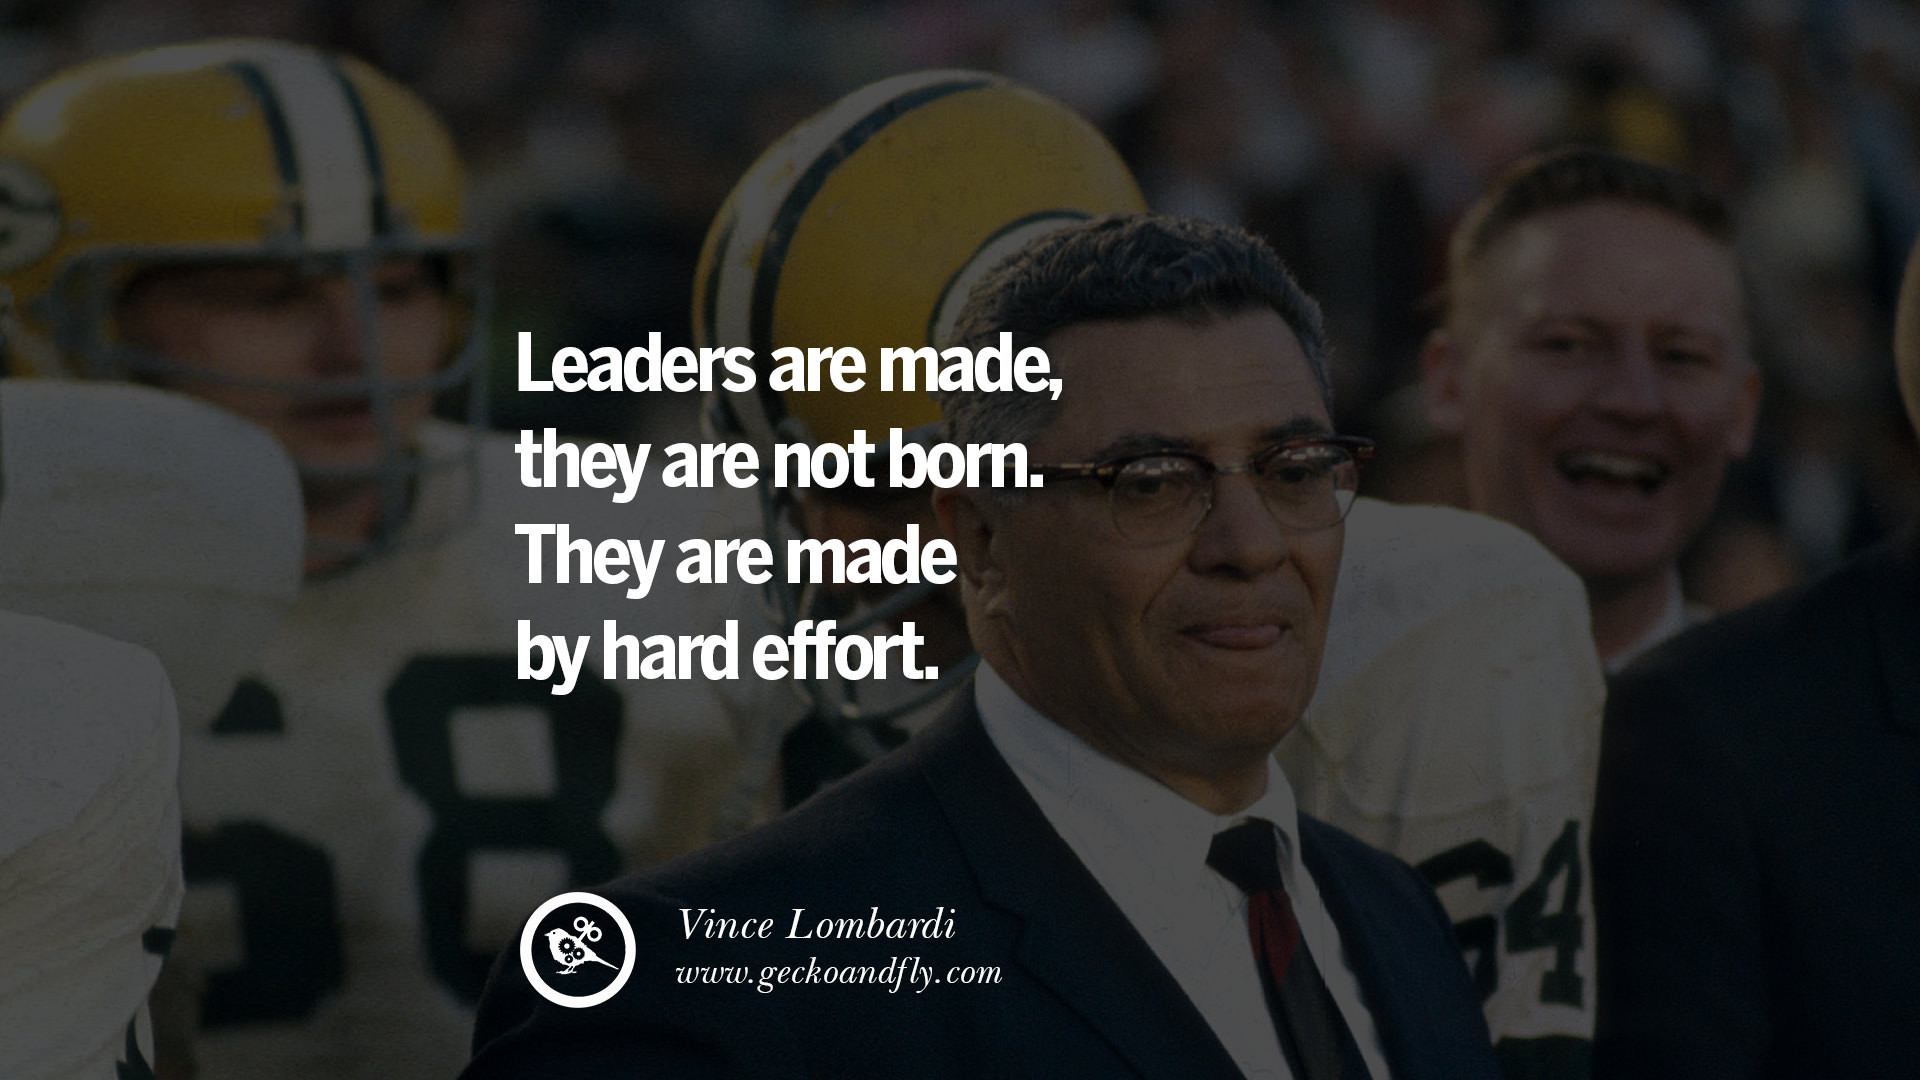 Vince Lombardi Leadership Quotes  22 Uplifting and Motivational Quotes on Management Leadership